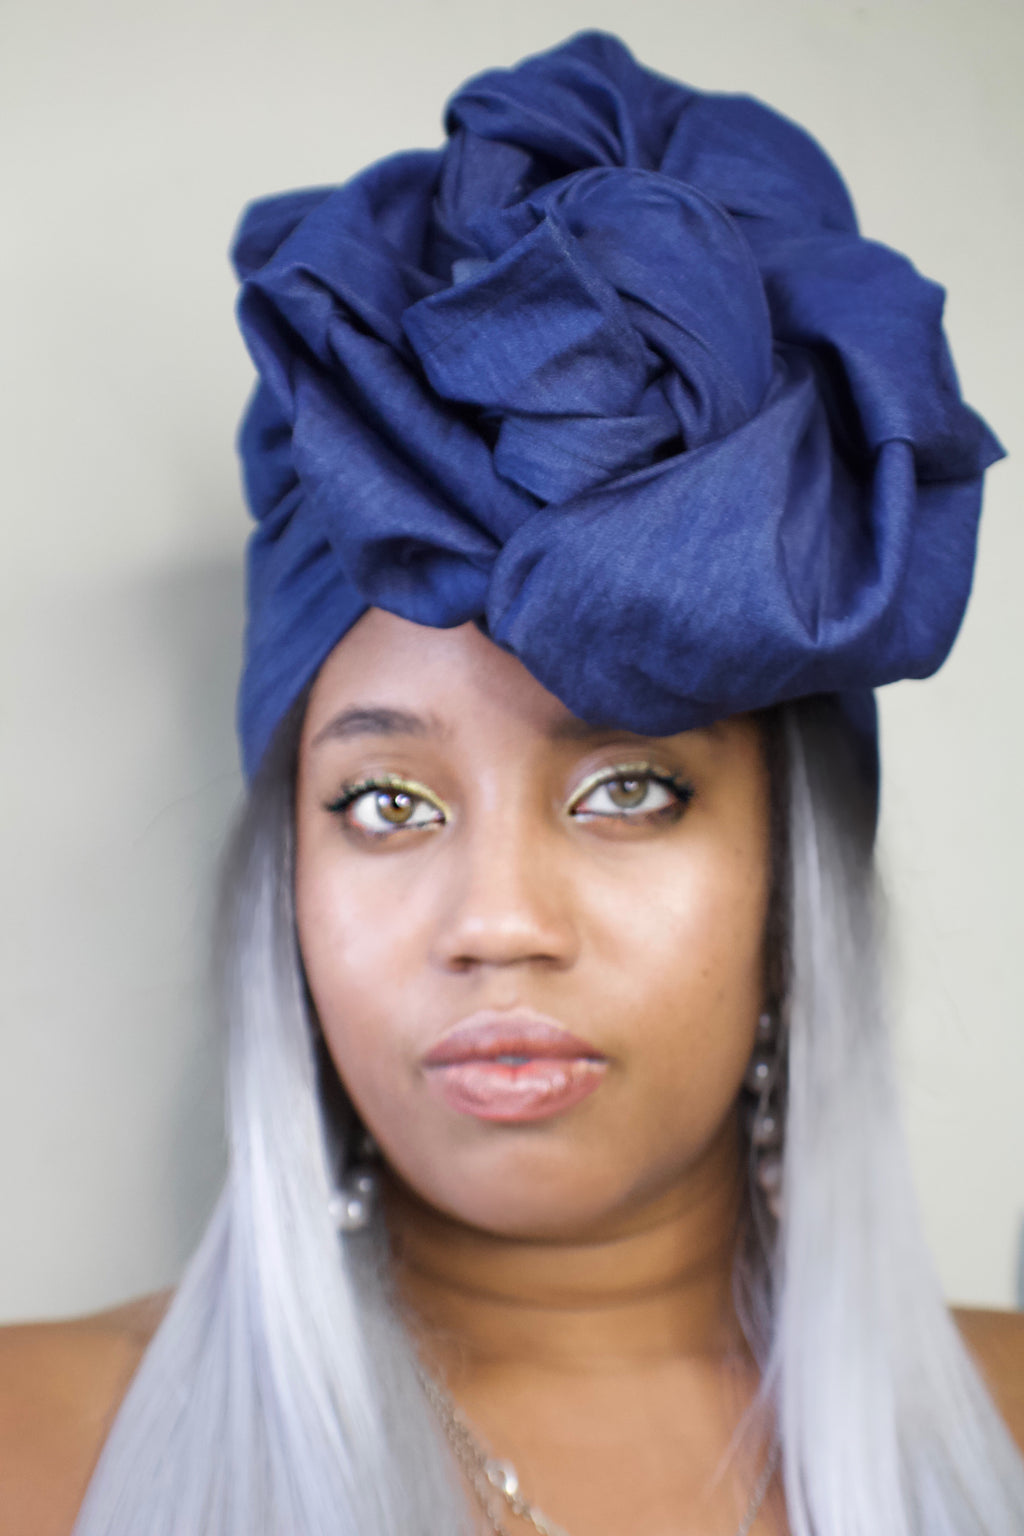 Desert Blues Dark Denim Headwrap - shopdraped